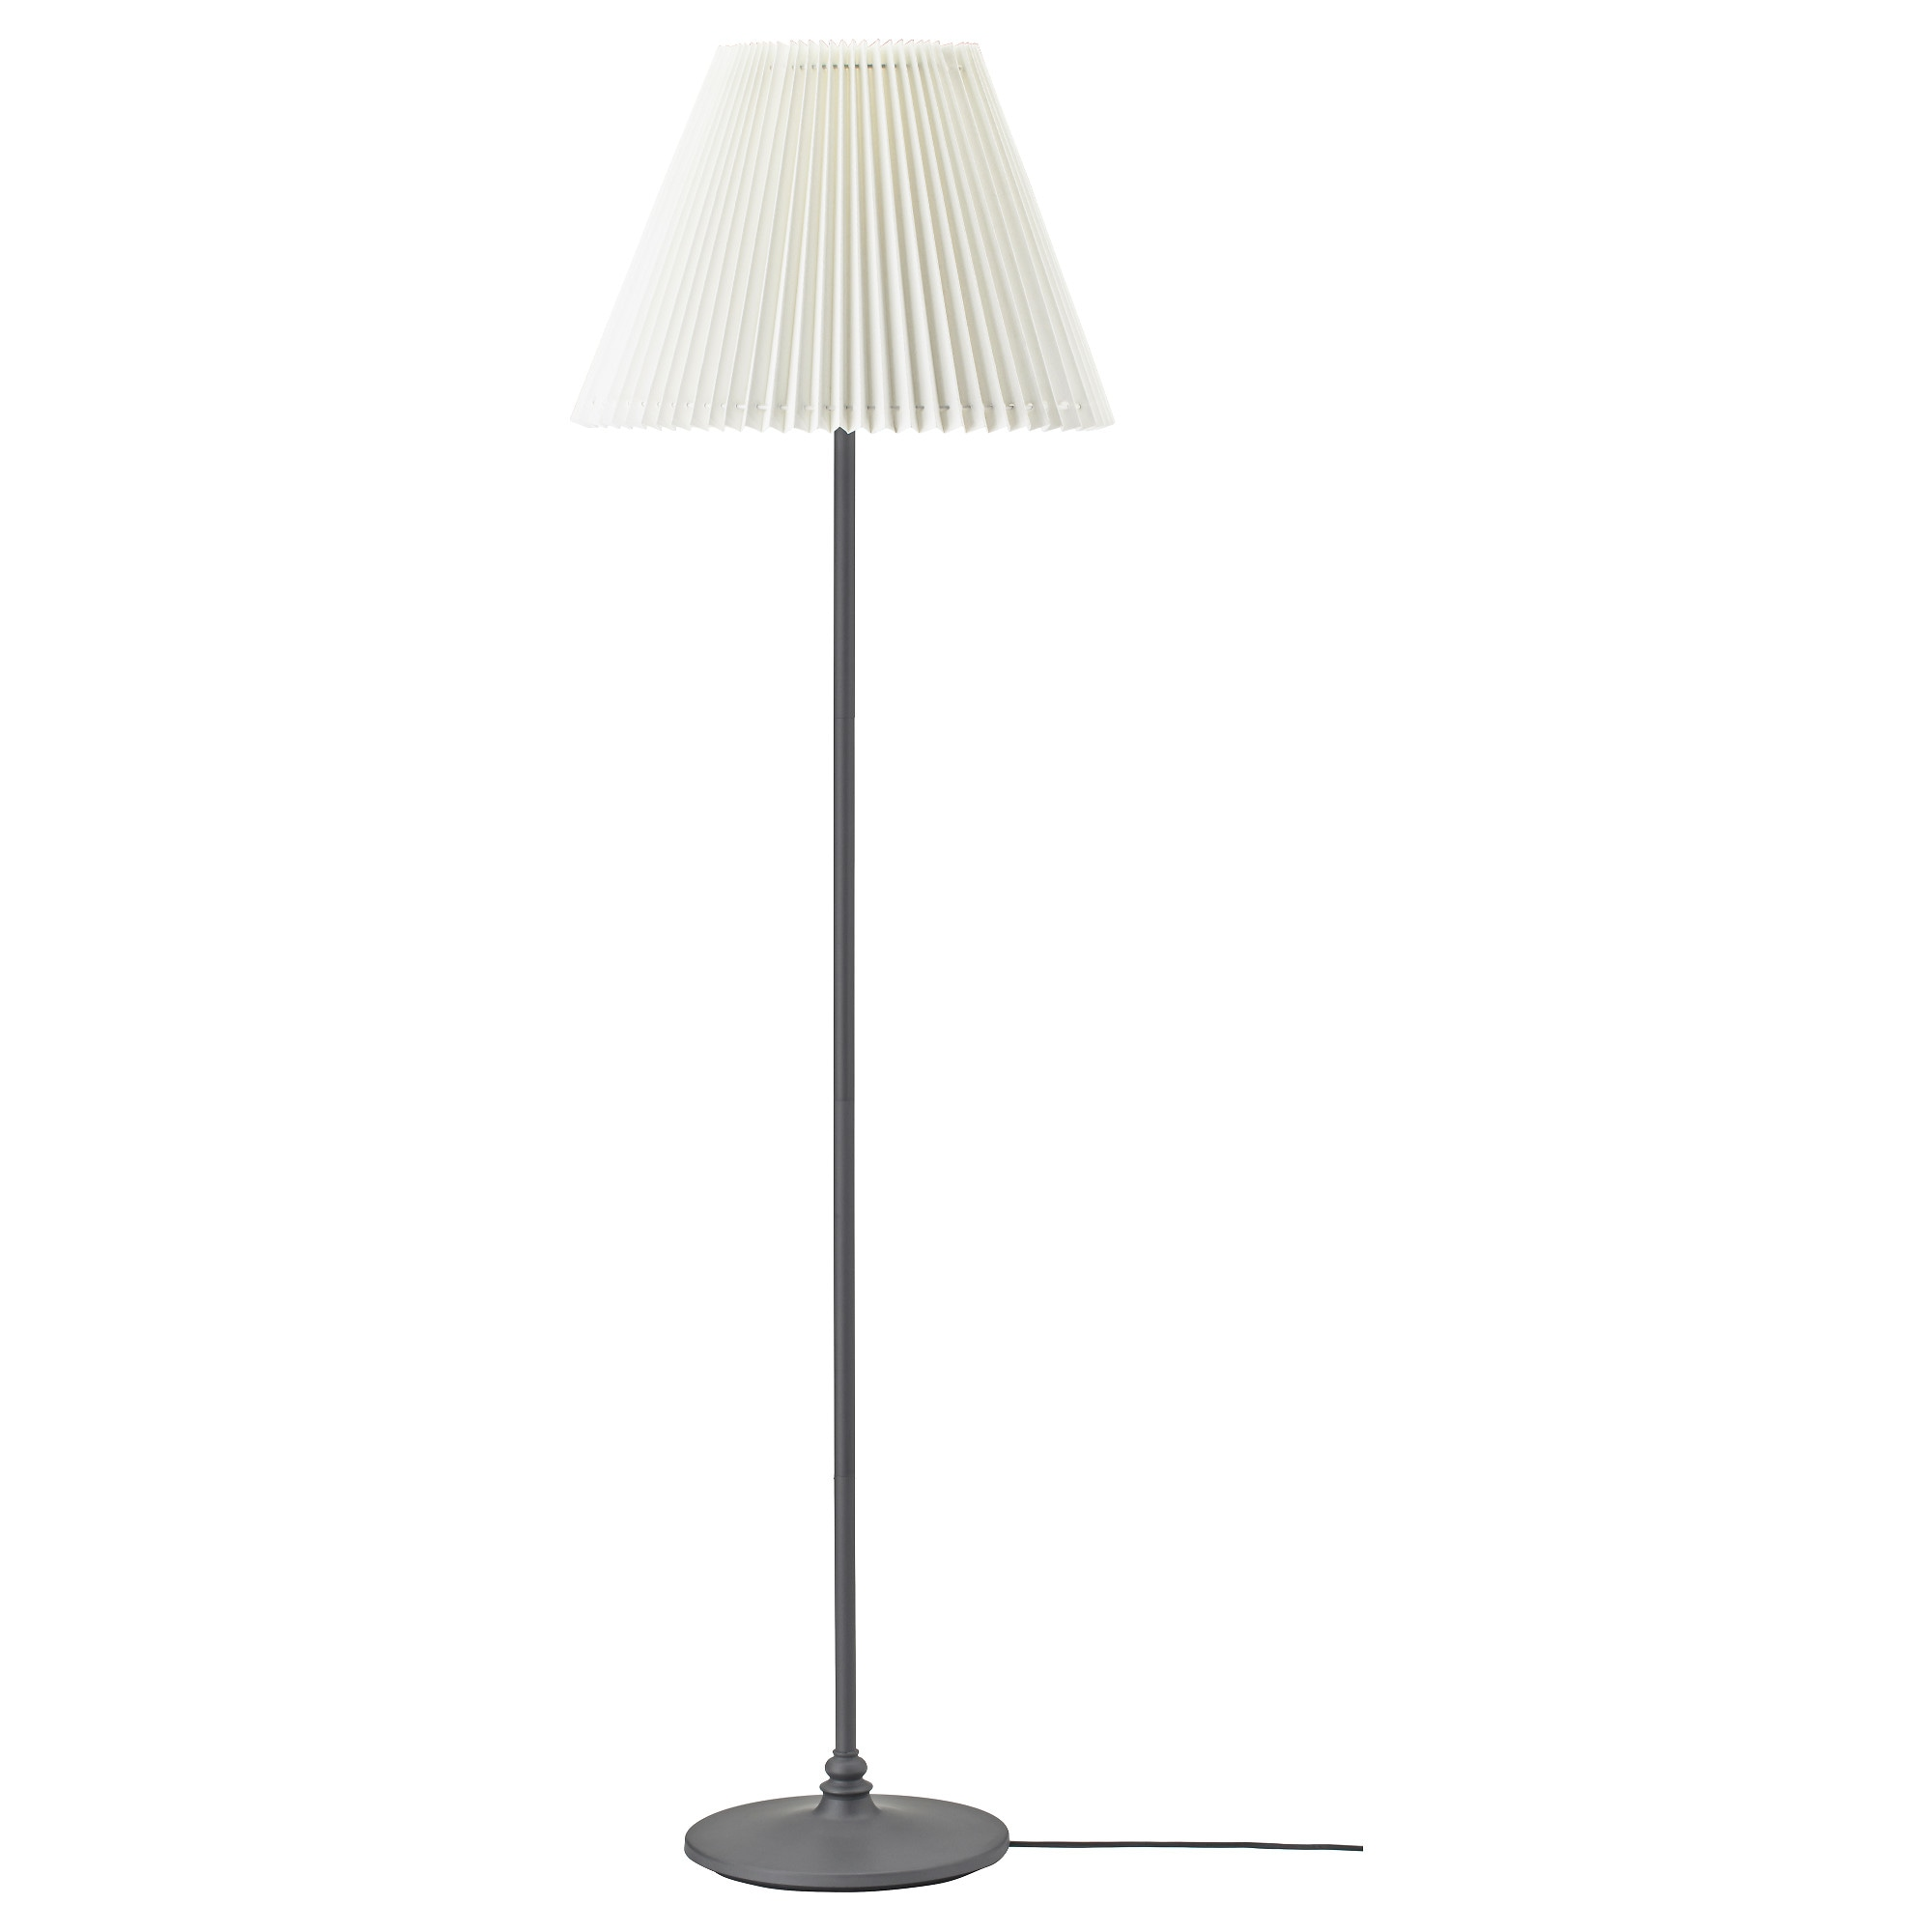 Floor lamps lighting ikea ngland floor lamp mozeypictures Choice Image